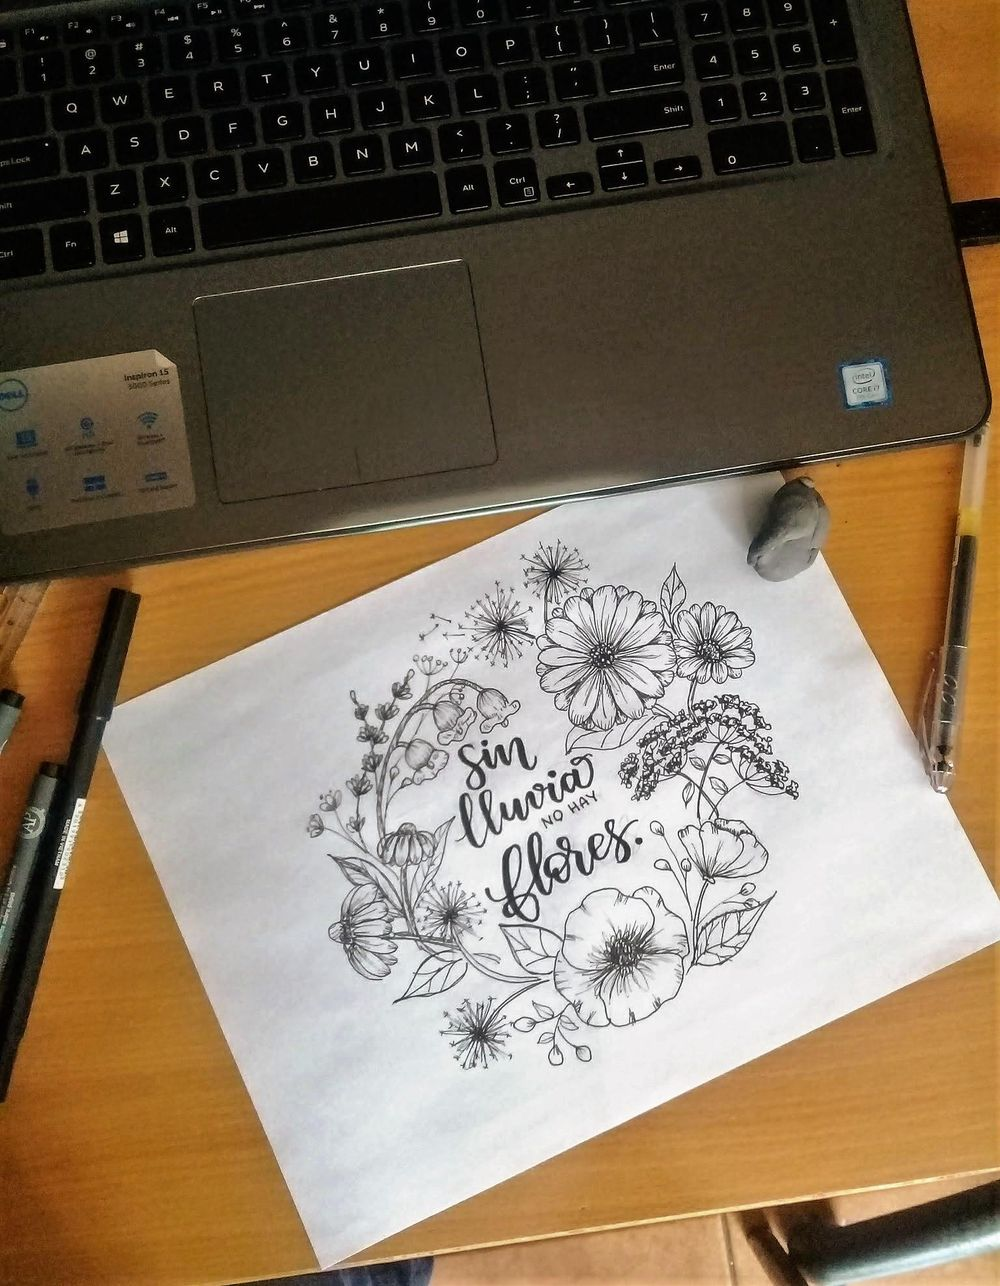 inked Wild Flowers - image 2 - student project